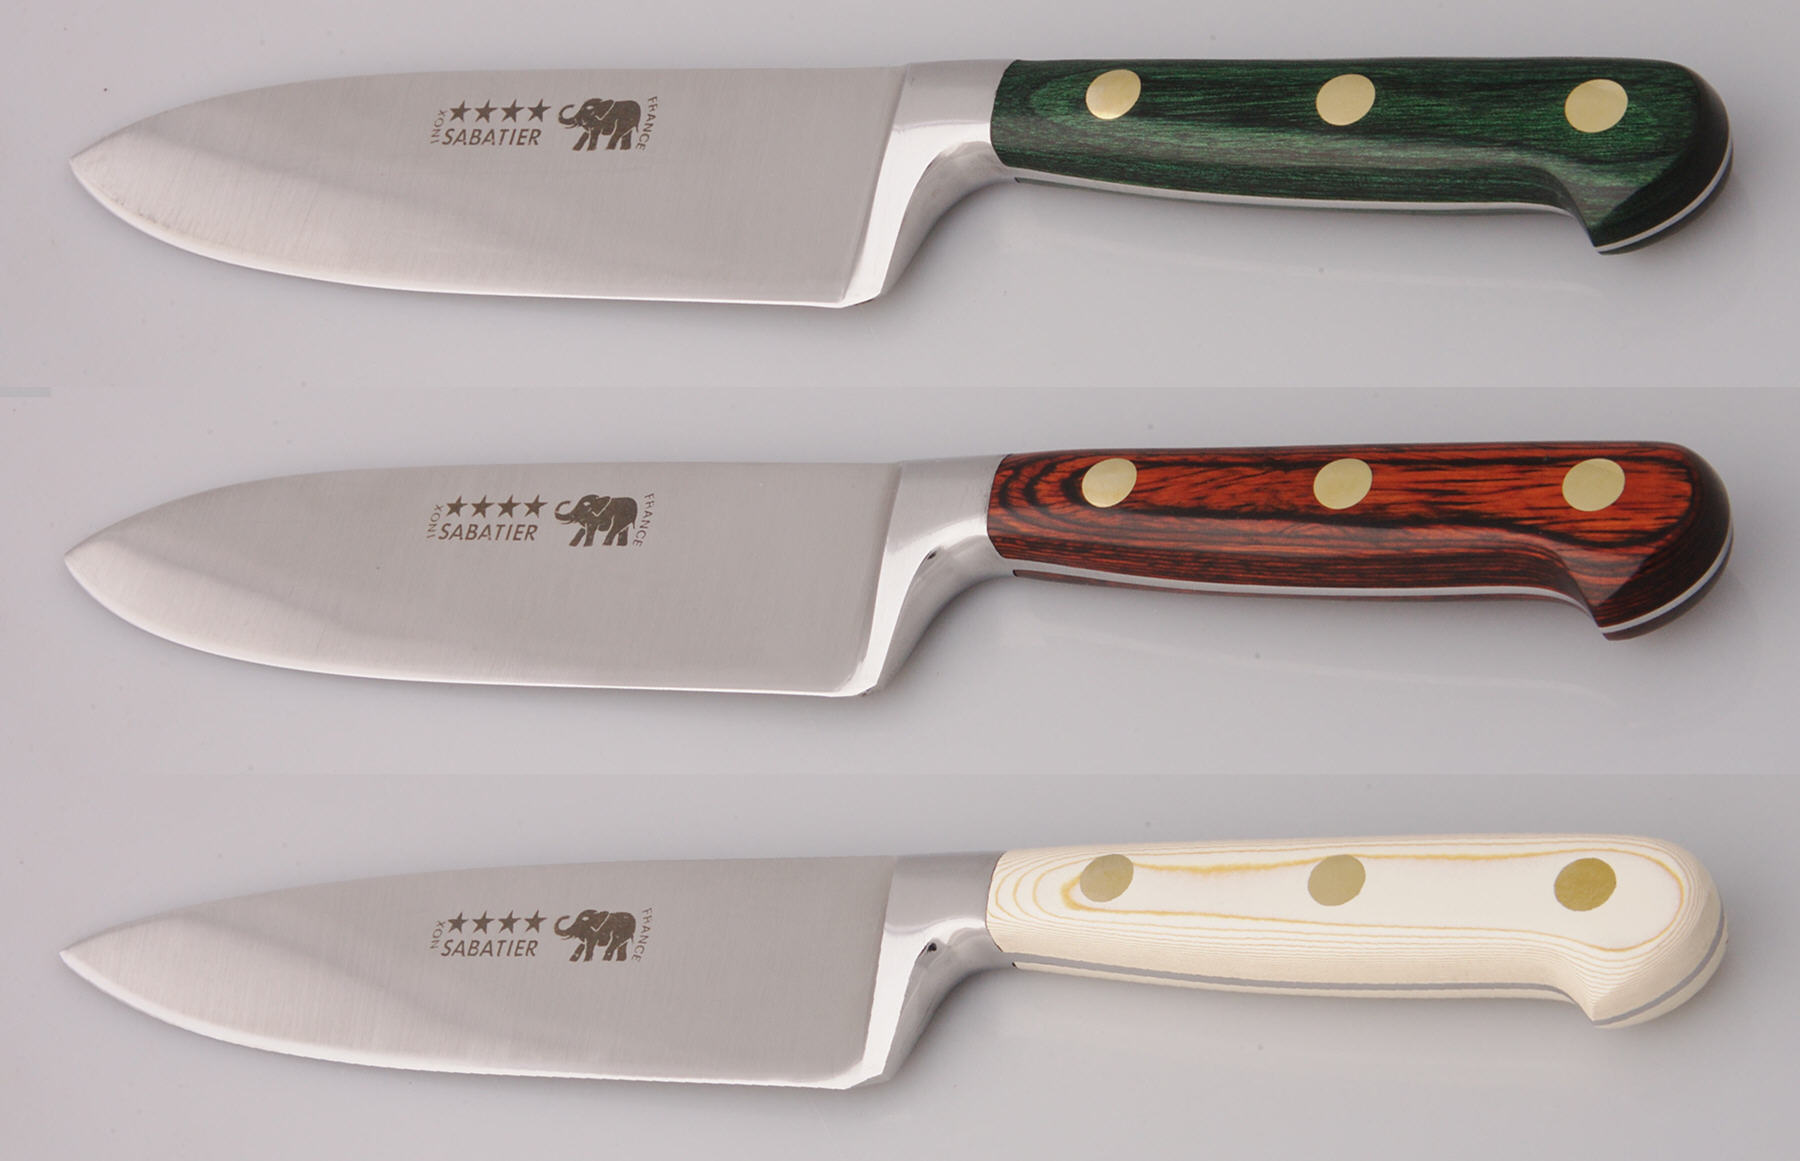 6 in 15 cm chef knife wide with color choice great french knives thiers issard four star elephant sabatier knives 6 in chef knife wide bon